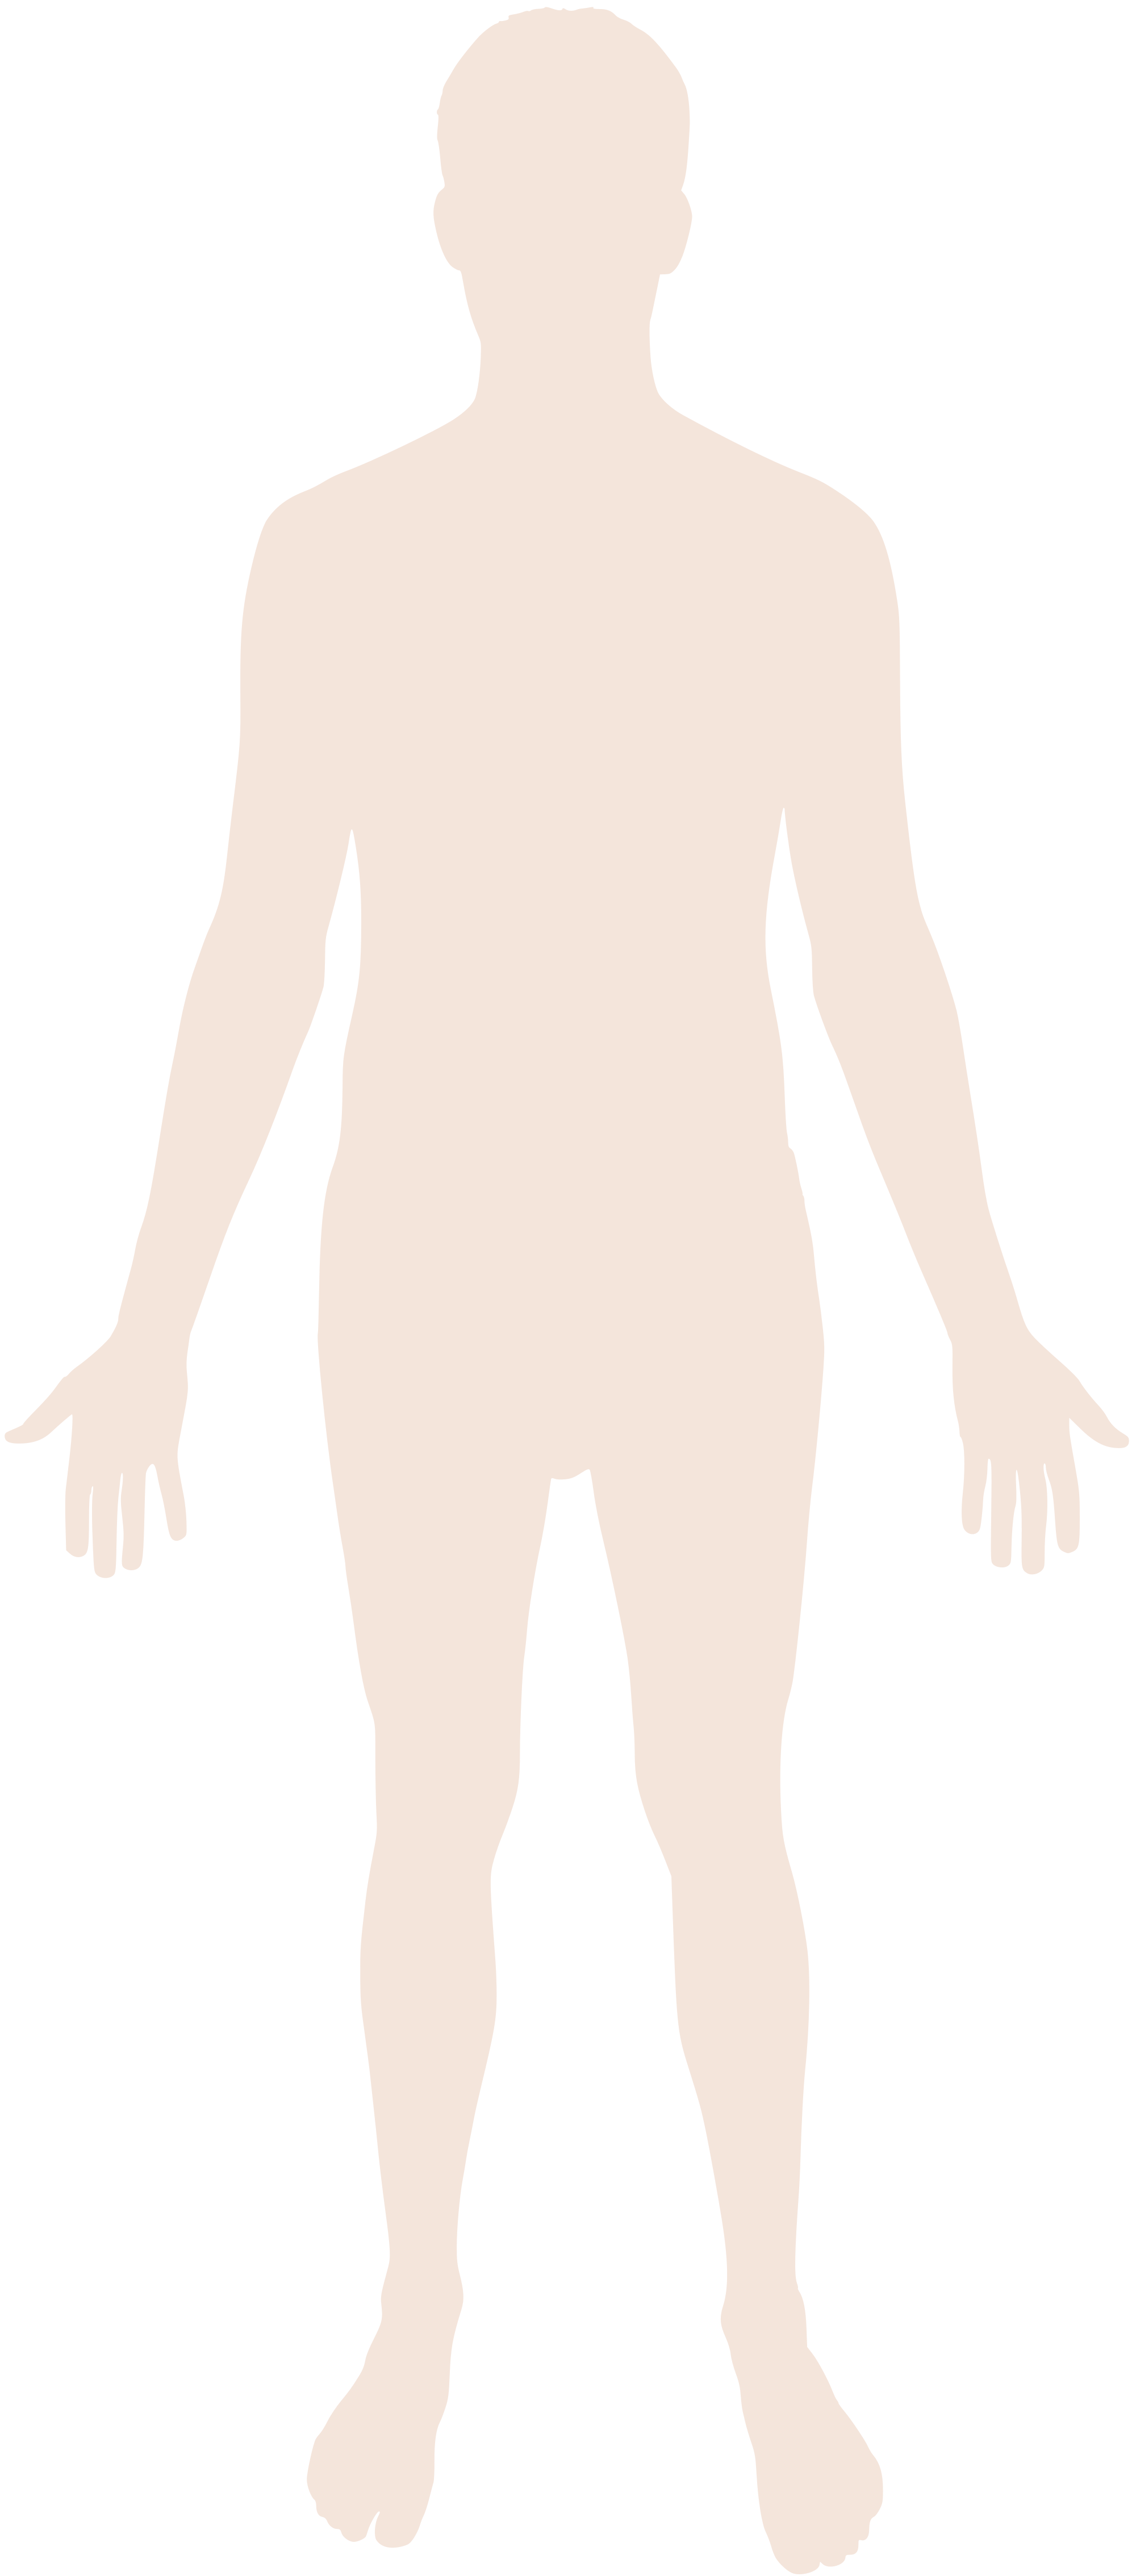 Human body png. File silhouette svg wikimedia